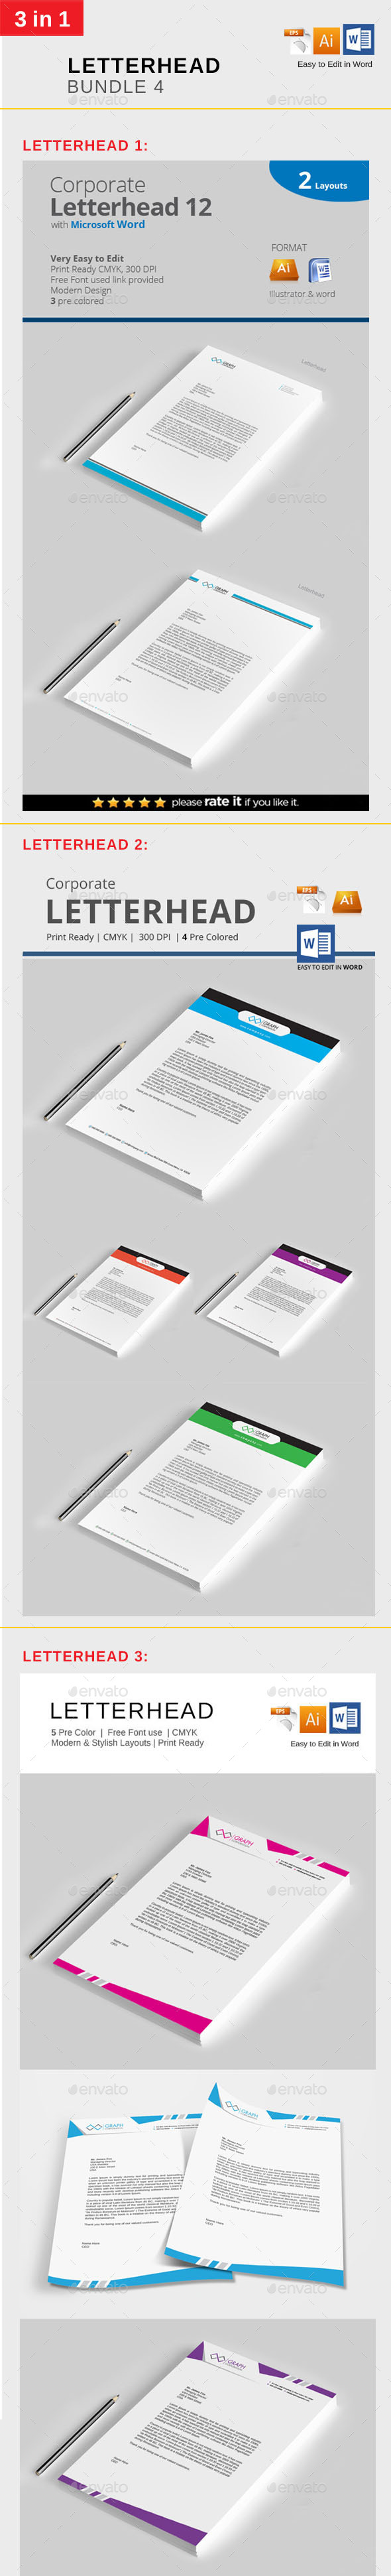 Letterhead Bundle 4 - Stationery Print Templates